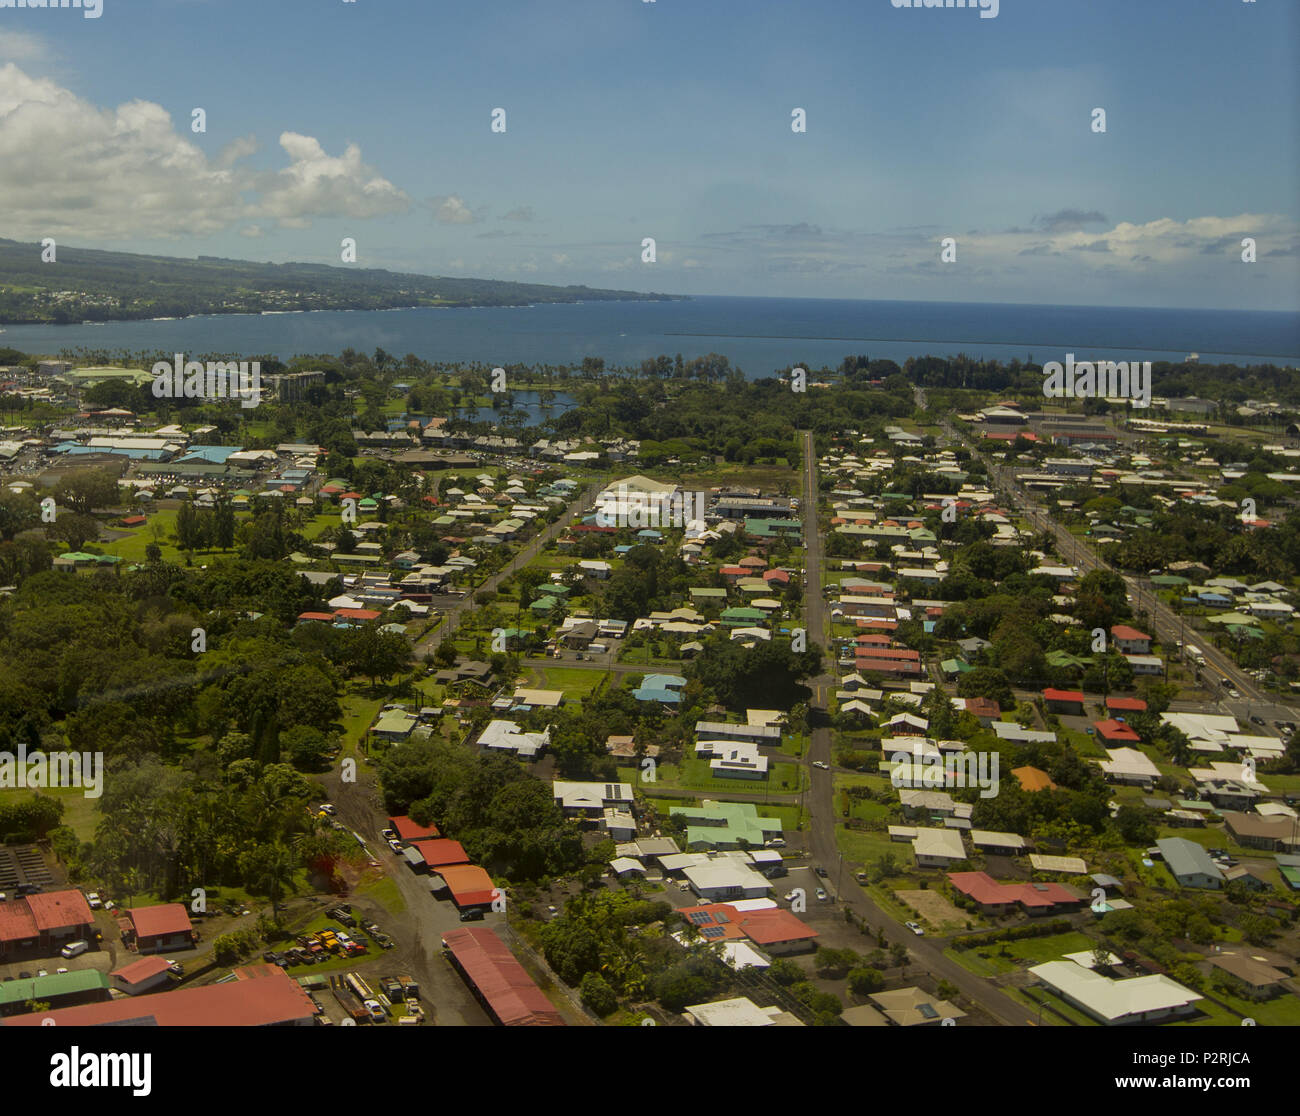 Pahoa, Hawaii, USA. 6th June, 2018. All things in Hilo continue on as usual while the lower east rift zone eruption continues on Wednesday, June 6, 2018, in Pahoa, Hawaii. Photo by L.E. Baskow/LeftEyeImages Credit: L.E. Baskow/ZUMA Wire/Alamy Live News Stock Photo